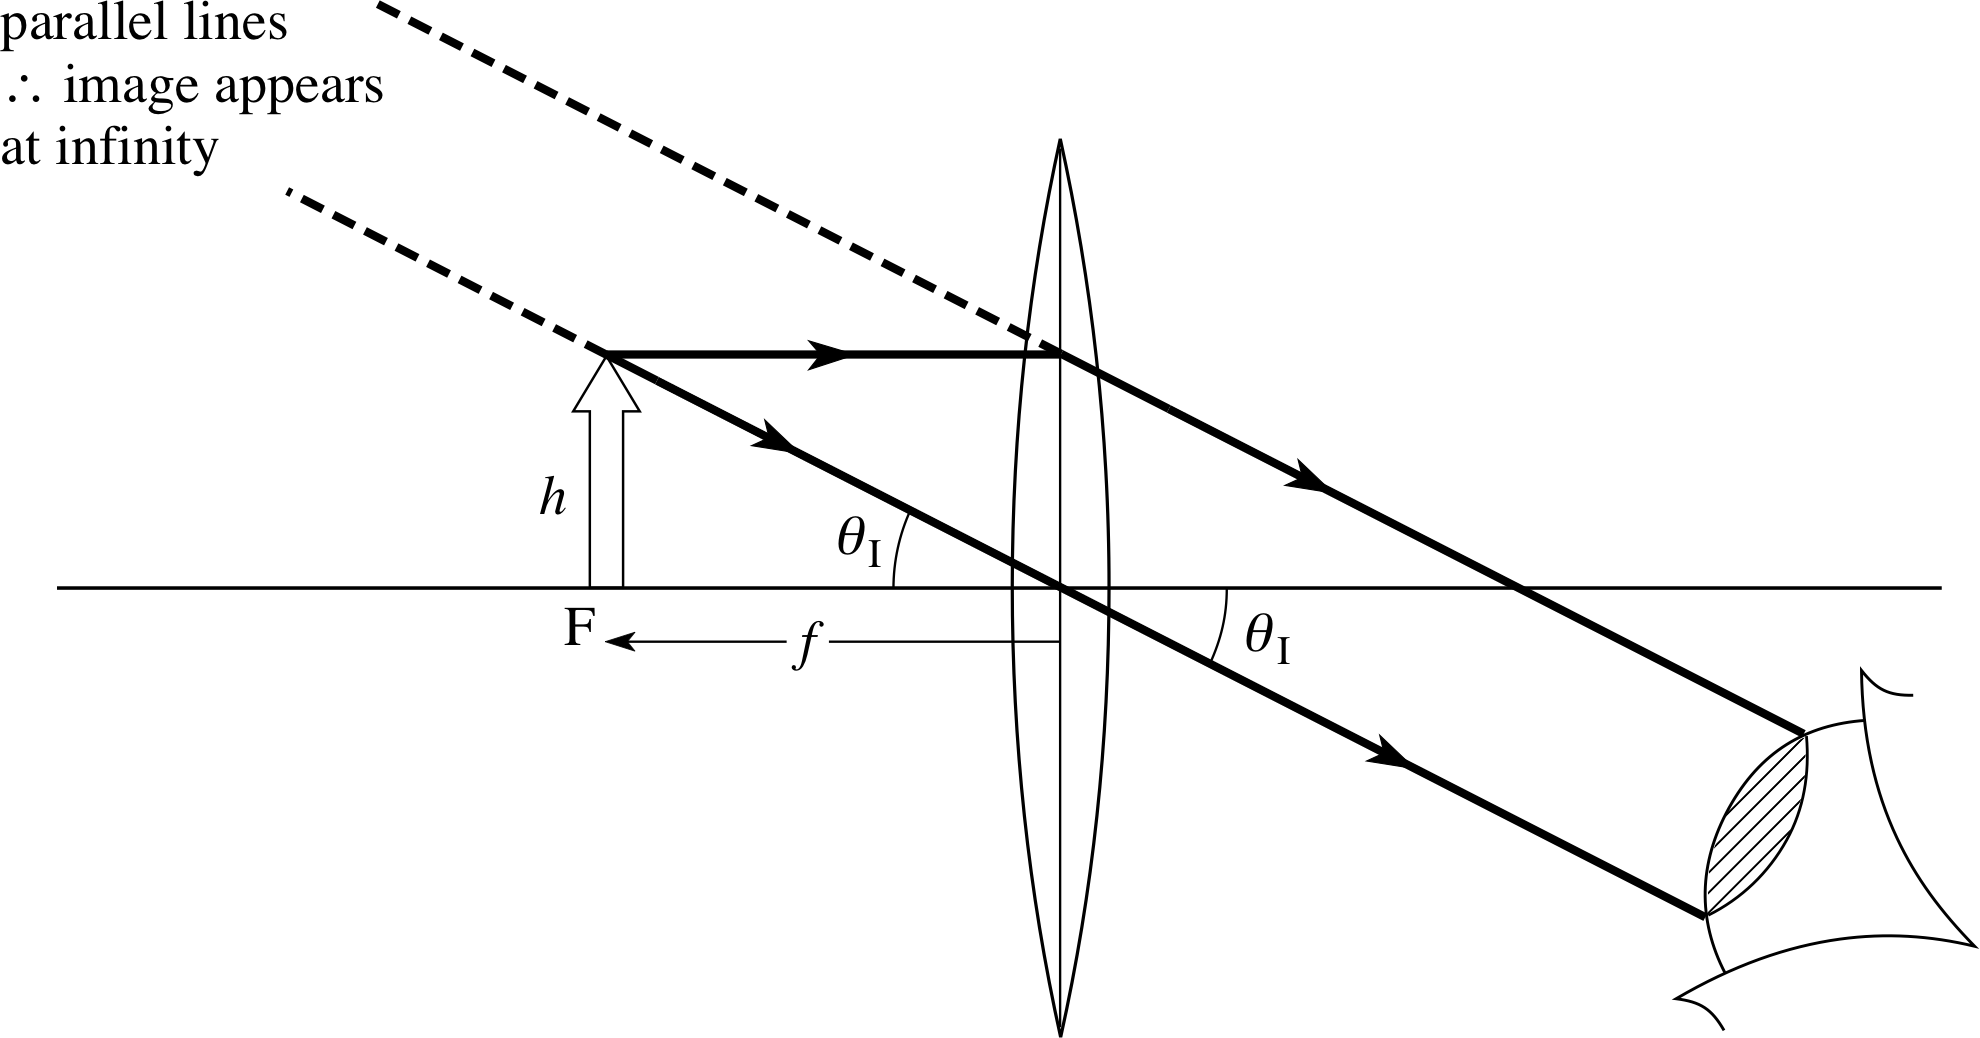 Pplato flap phys 64 optical instruments figure 15a ray diagrams for ccuart Gallery